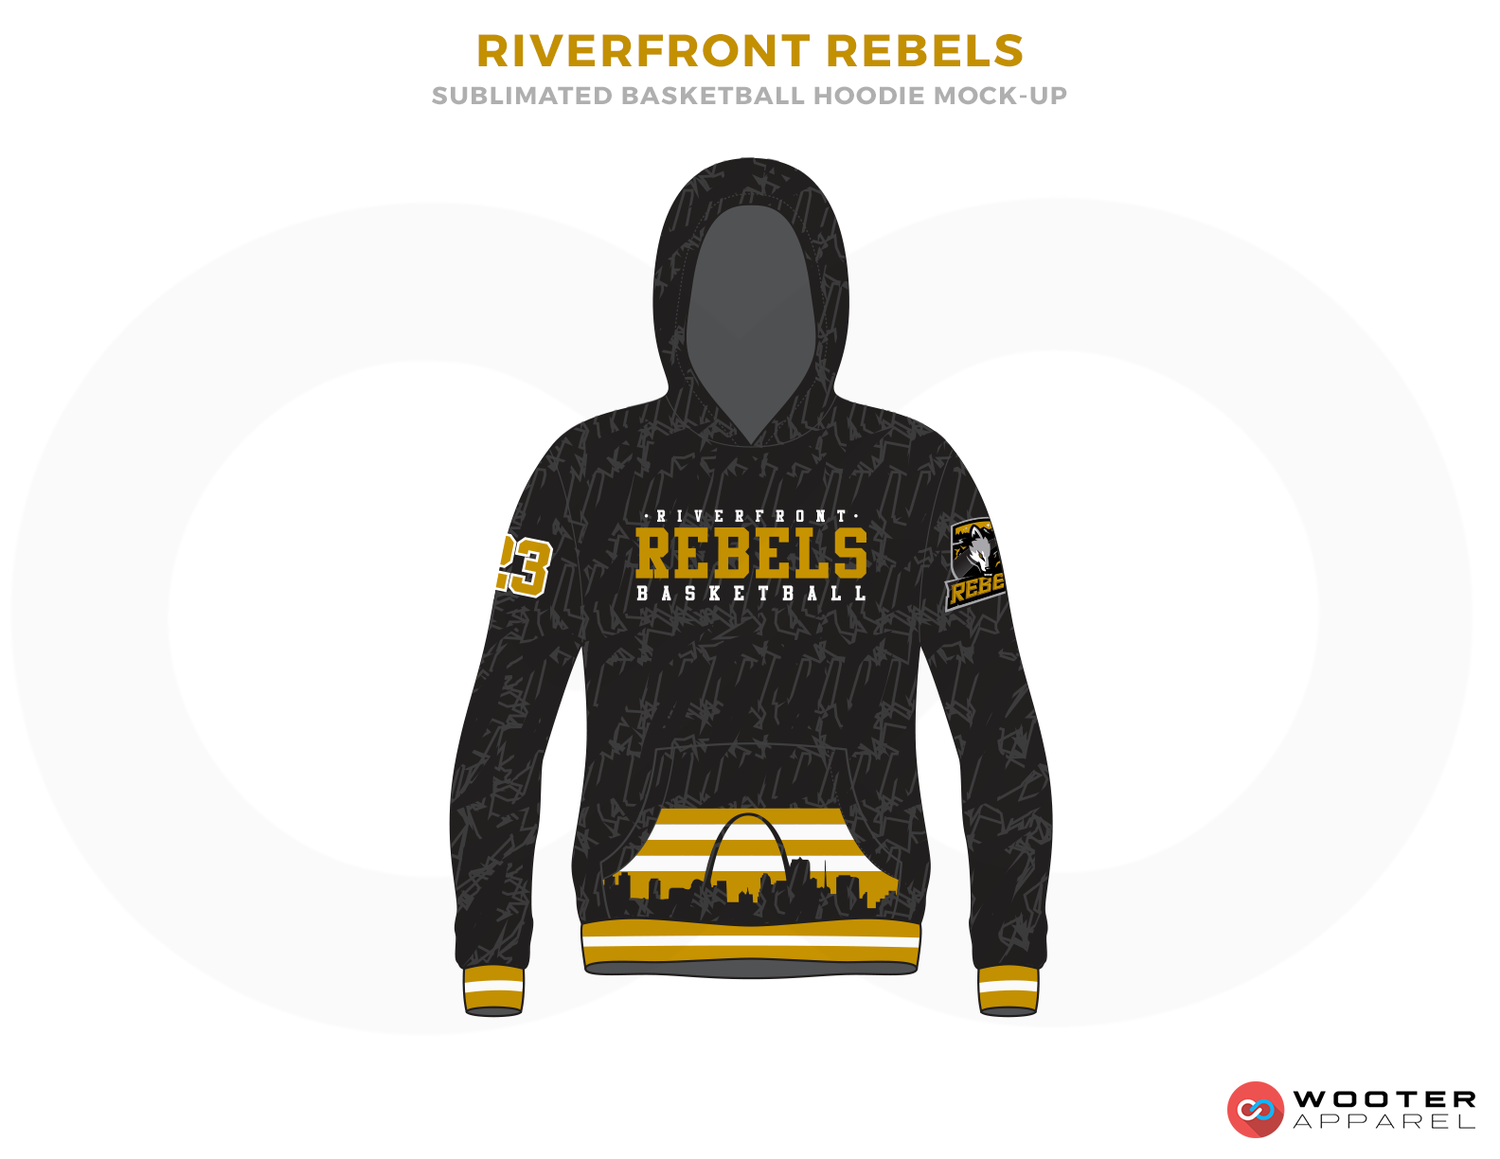 RIVERFRONT REBELS Black Grey Vegas Gold and White Baseball Uniforms, Hoodies